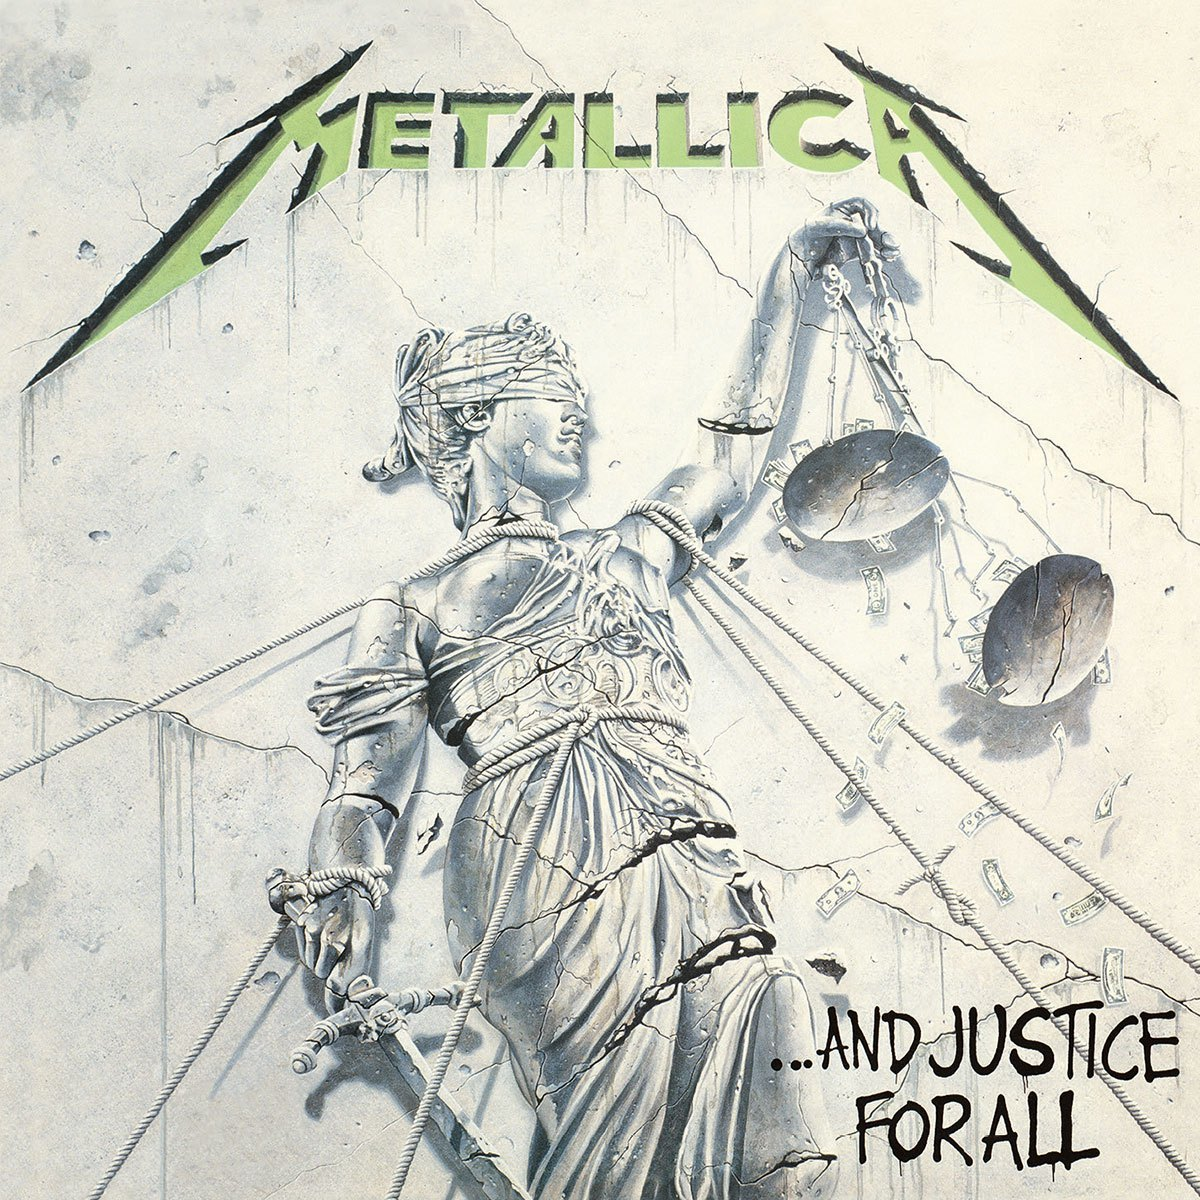 ...And Justice For All by Metallica image